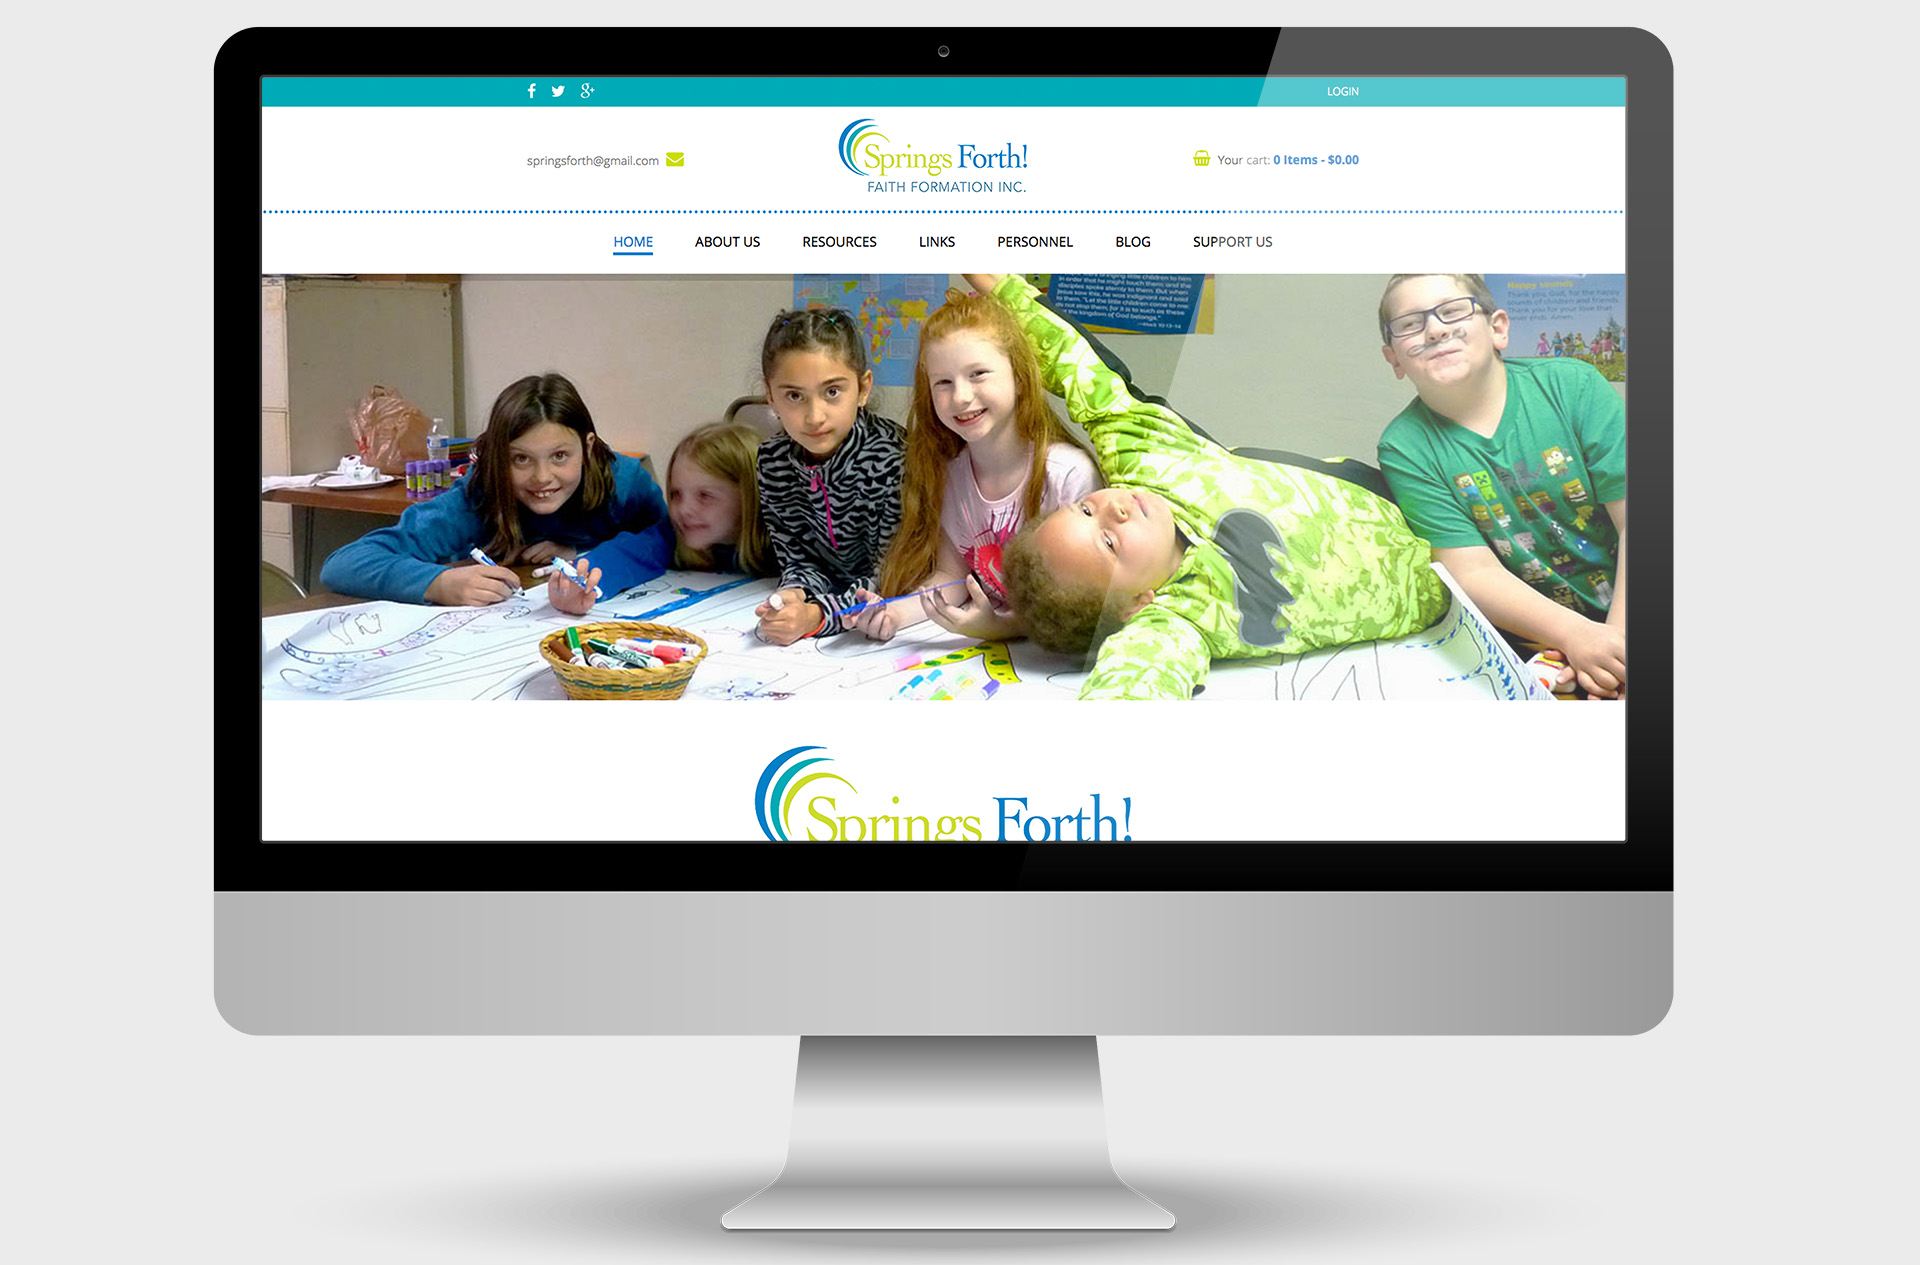 Springs Forth! Custom Website Design